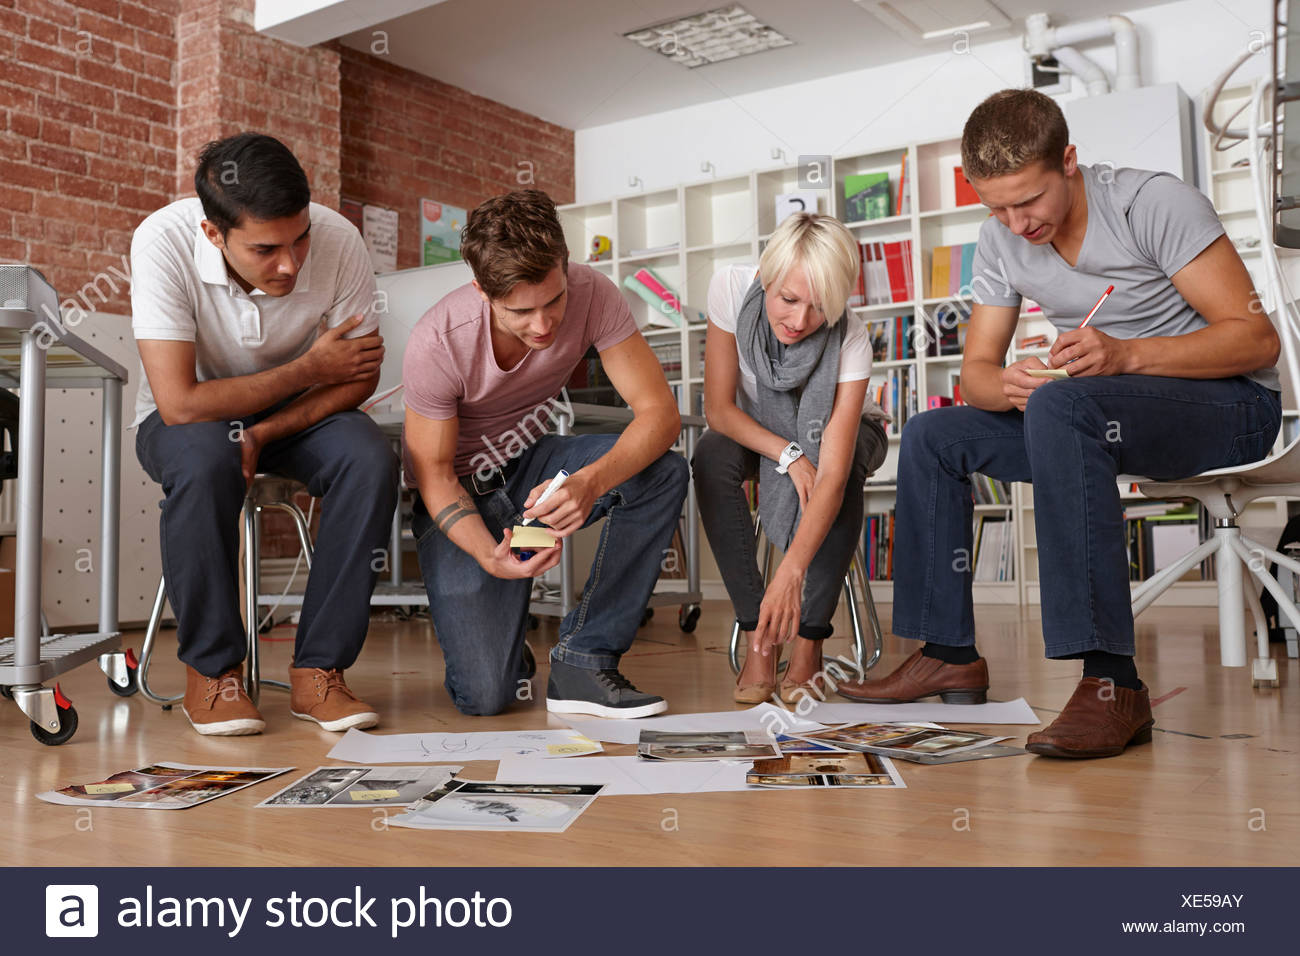 Colleagues in meeting looking at papers on floor - Stock Image